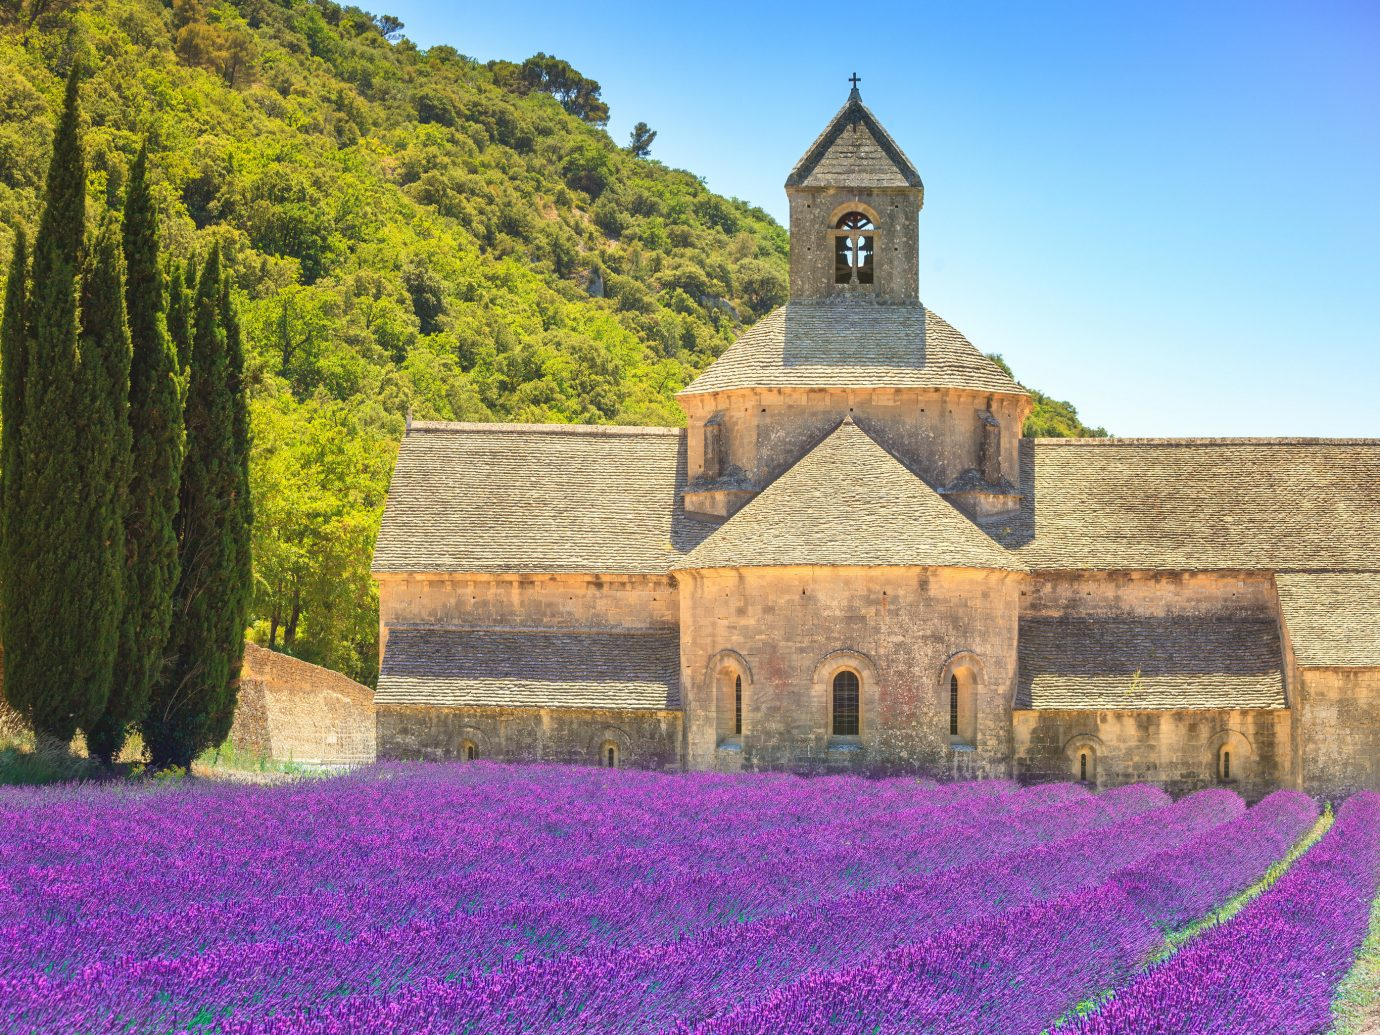 Offbeat outdoor grass building flower plant old land plant rural area field stone Church monastery estate flowering plant place of worship Garden